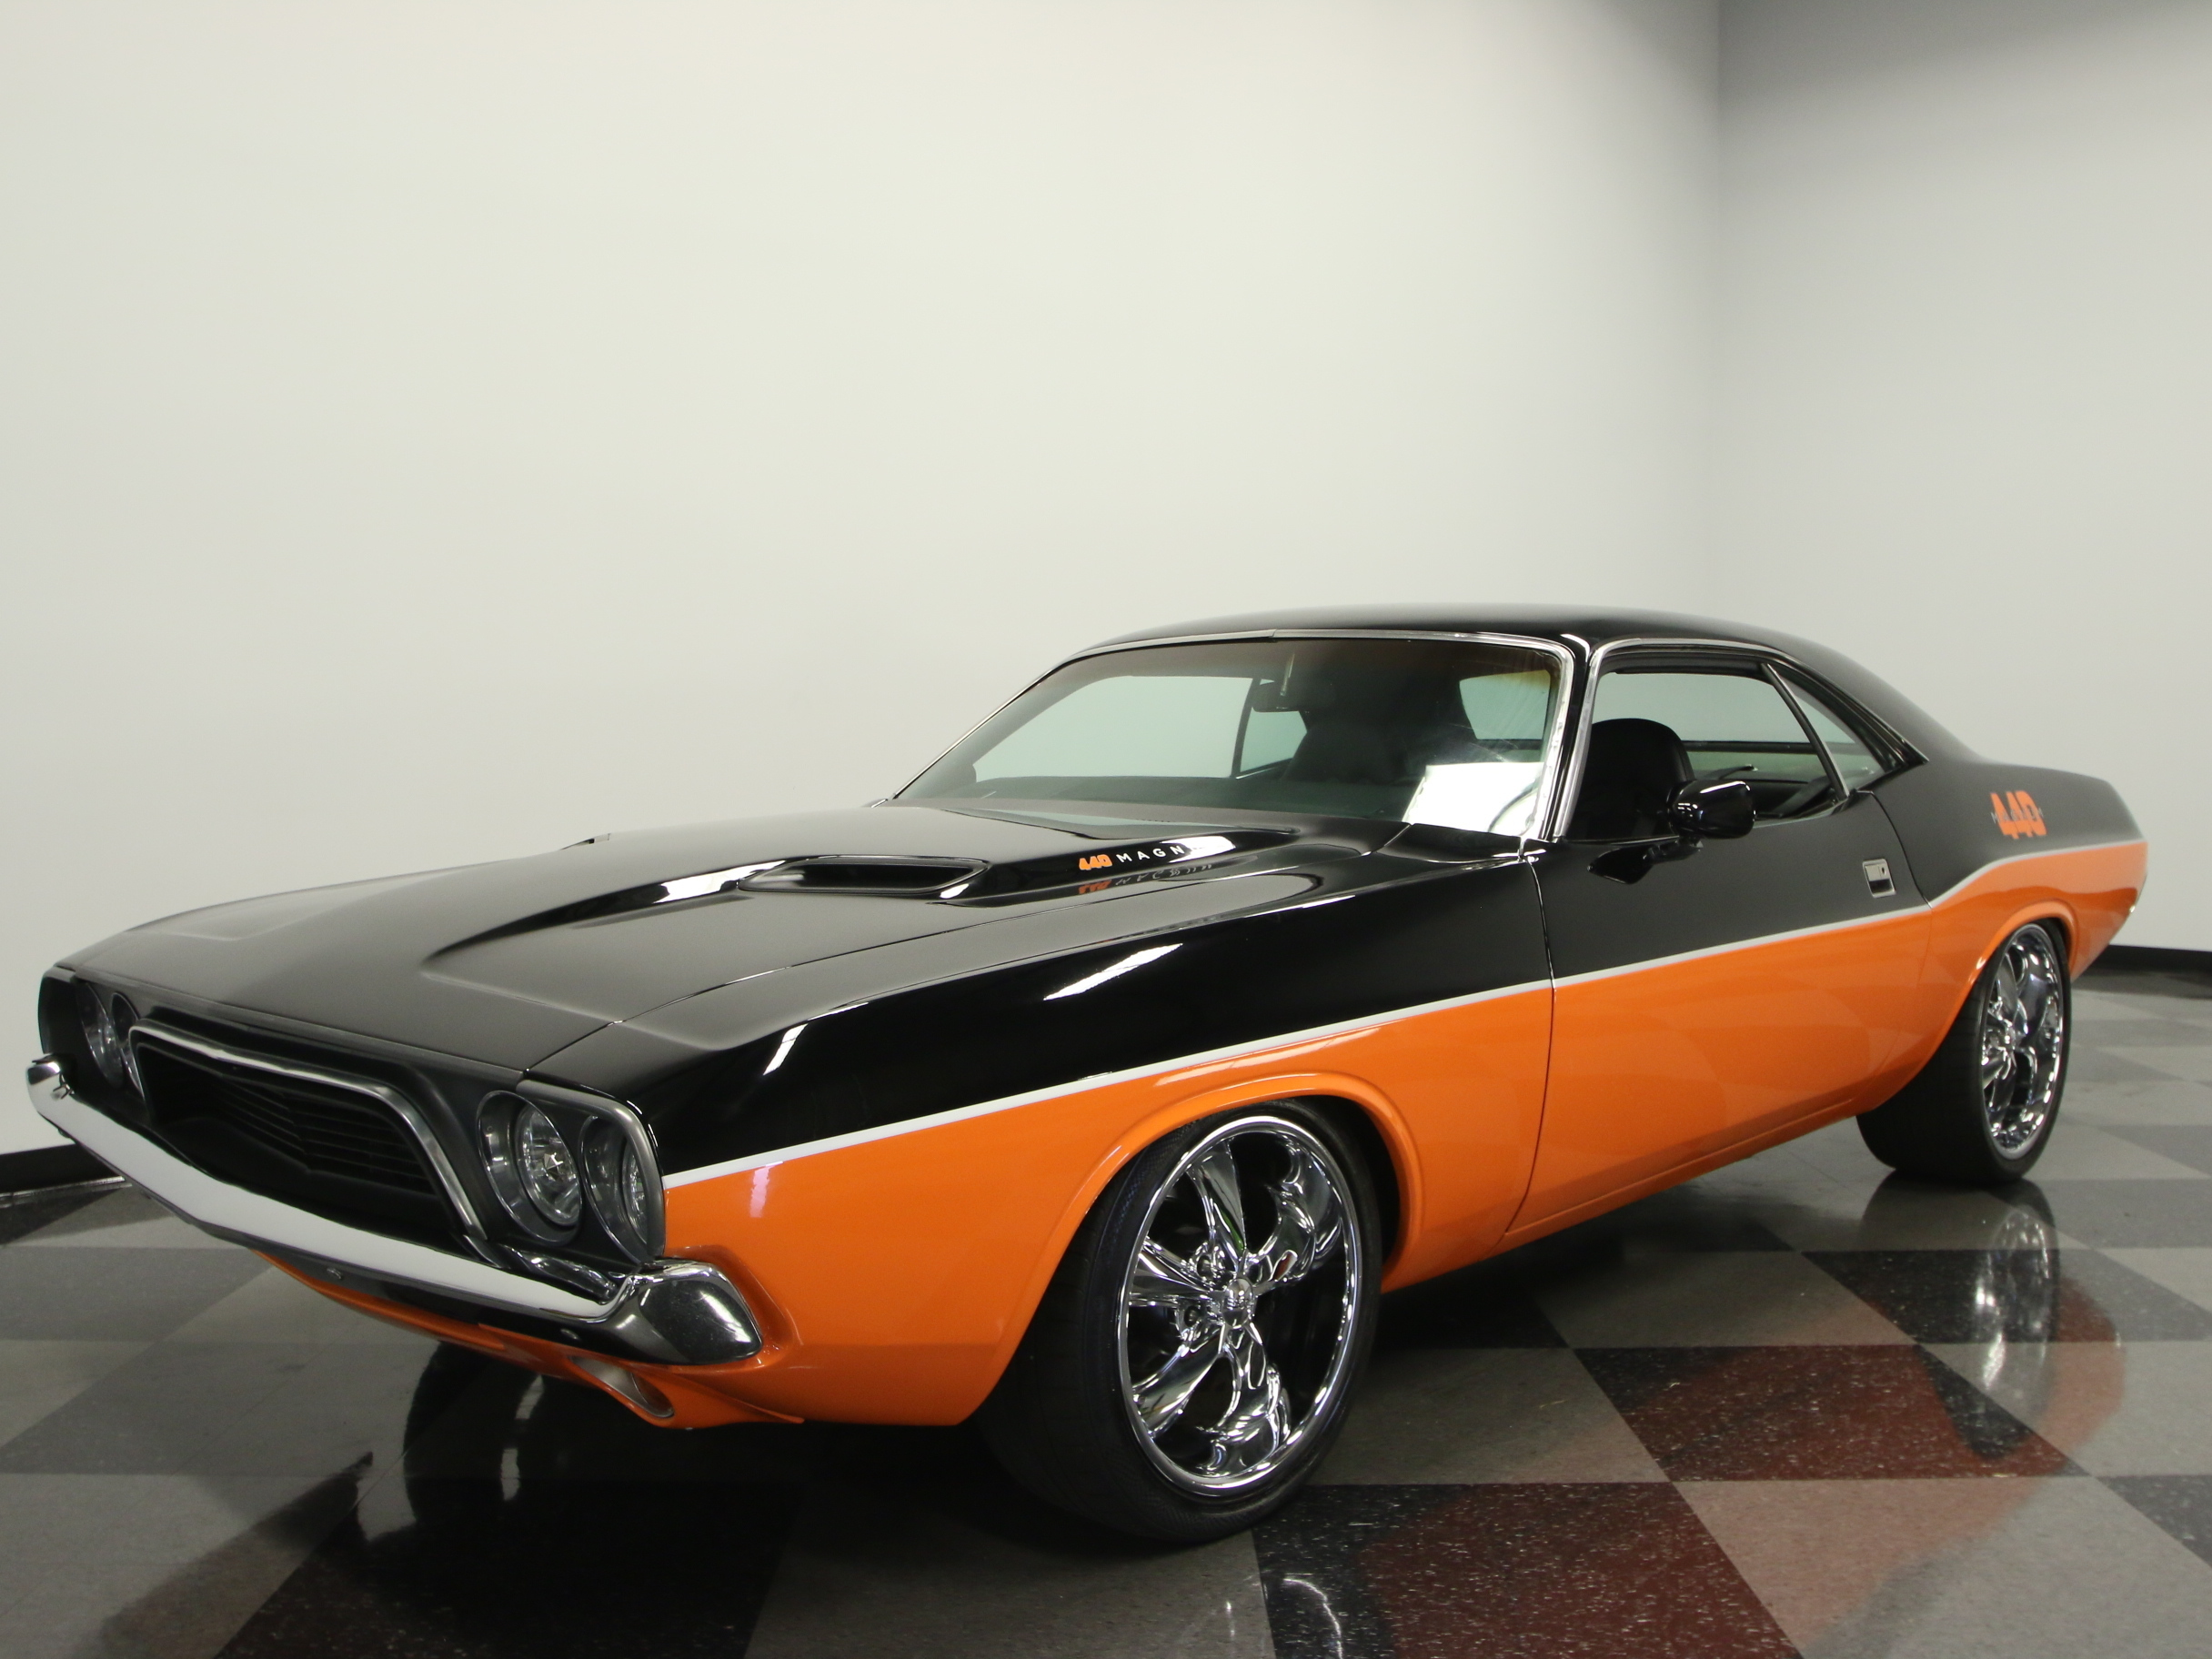 1972 Dodge Challenger : SERIOUS RESTOMOD, 482 HP BUILT 440, A727, HOTCHKIS, 4 WHL DISC, SLICK PAINT/BODY